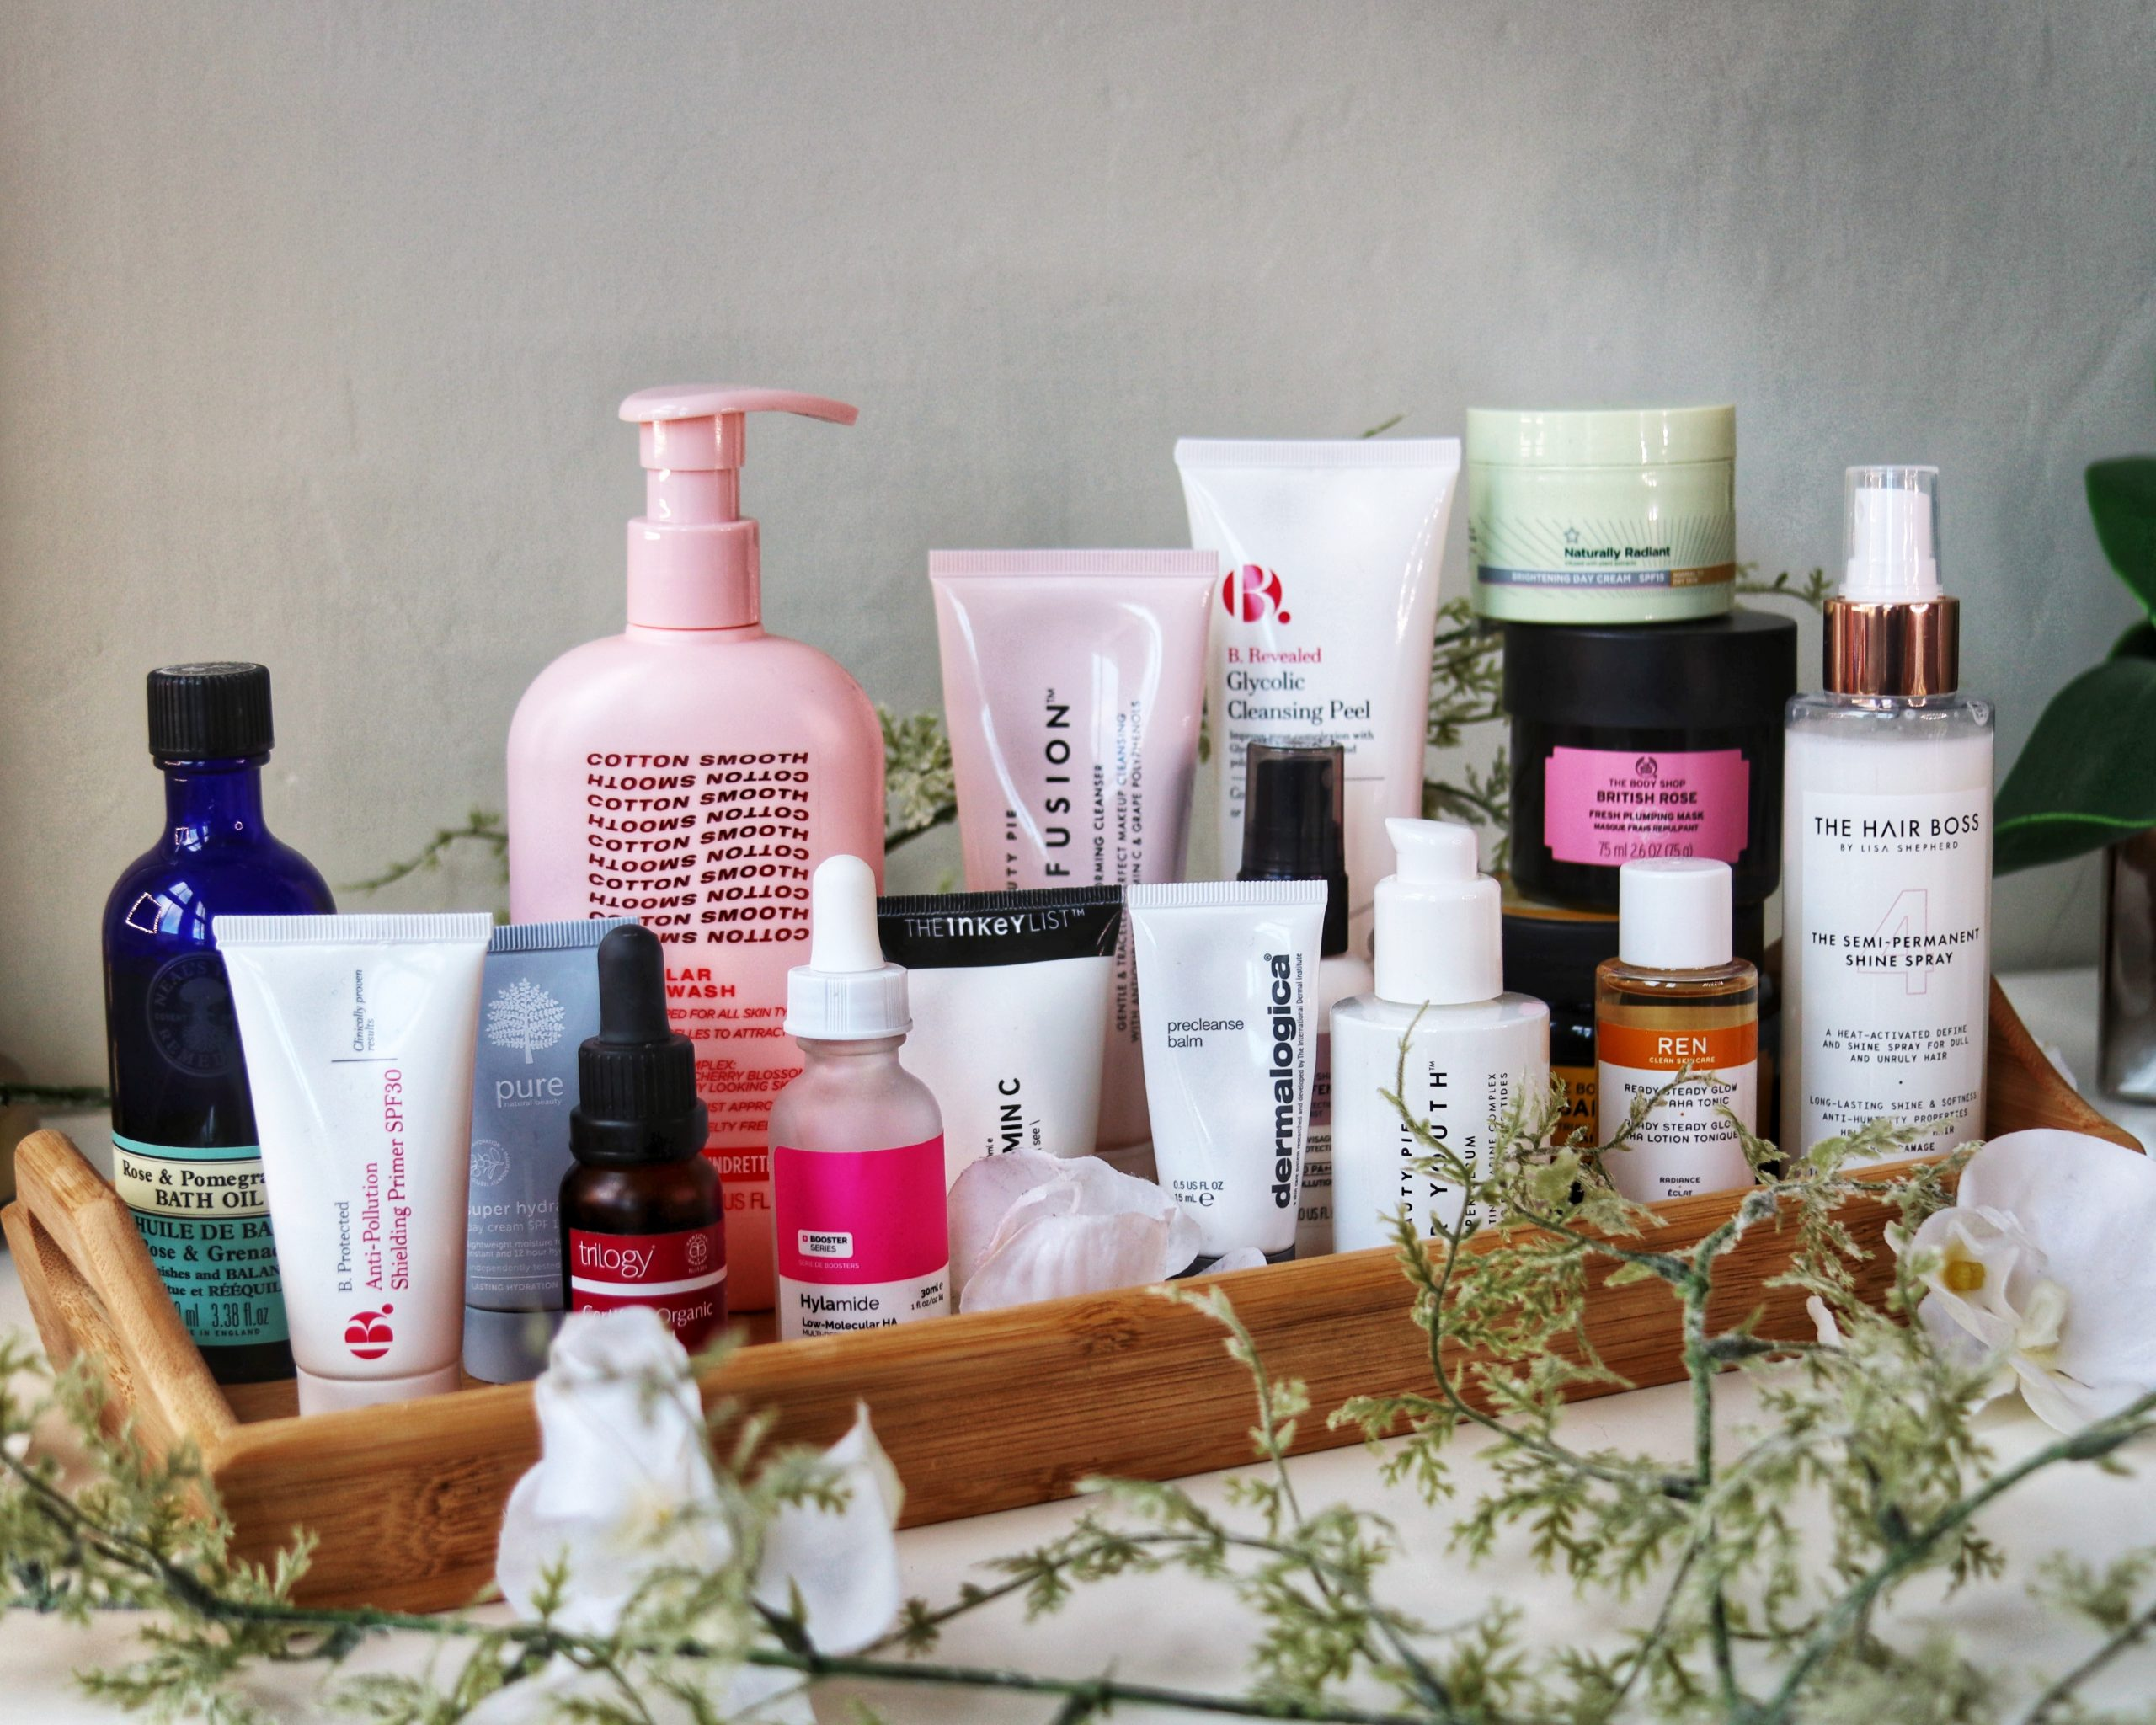 Vegan skincare a mix of skincare products collected to review new and cult vegan friendly beauty.